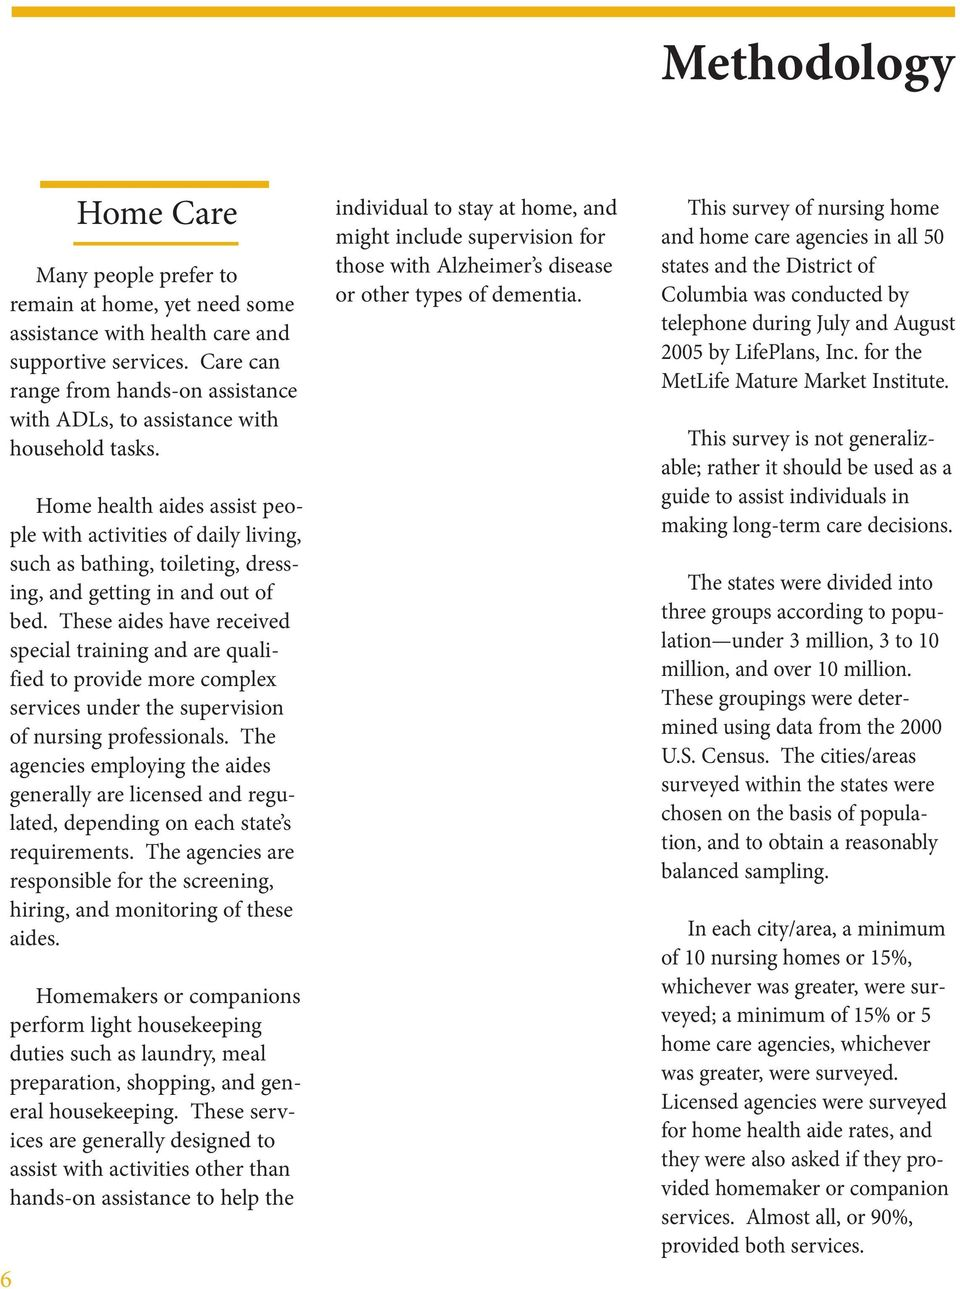 Home health aides assist people with activities of daily living, such as bathing, toileting, dressing, and getting in and out of bed.